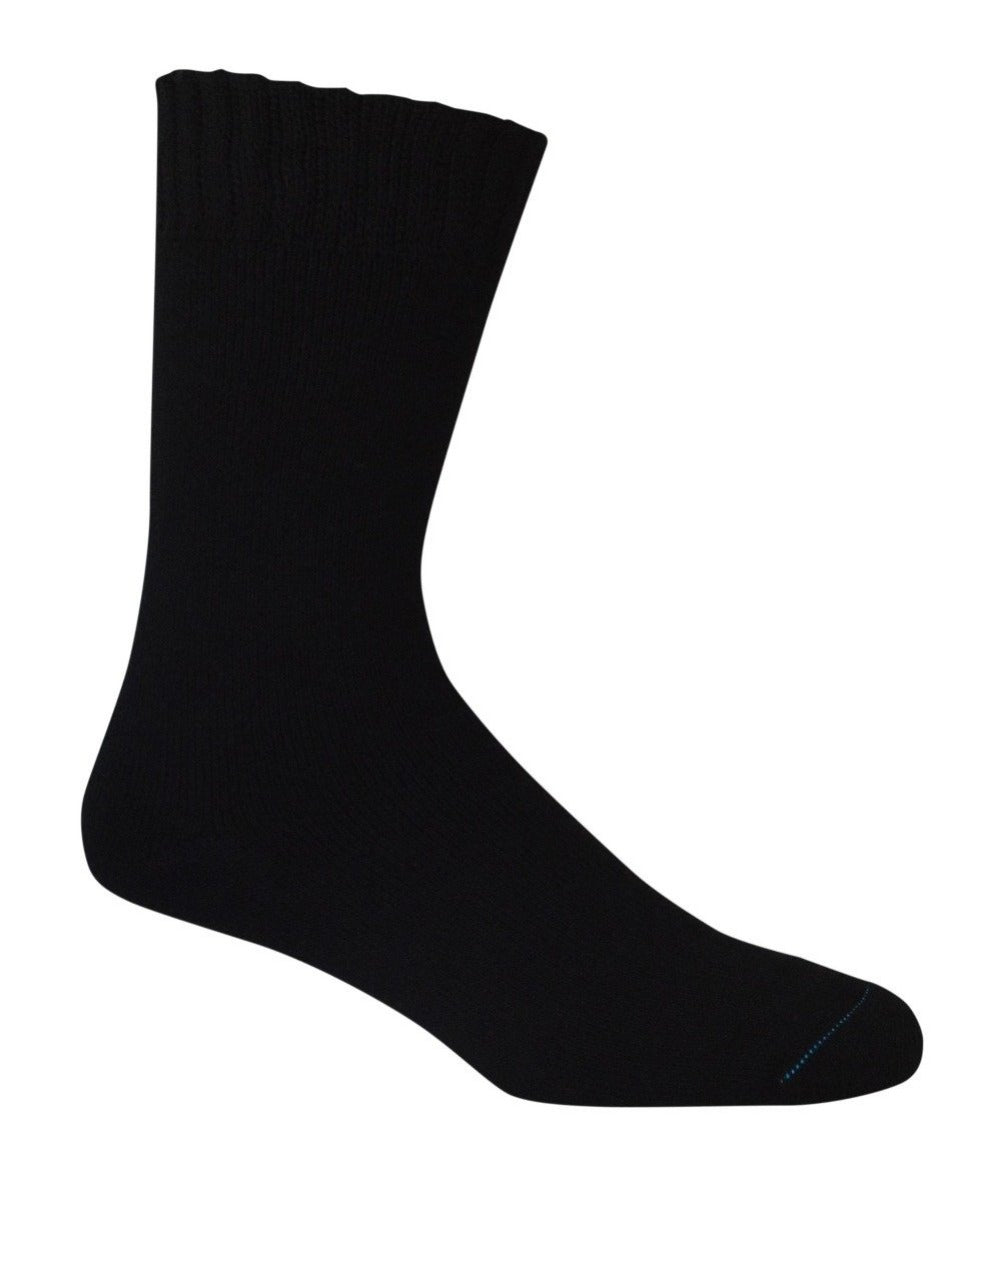 Bamboo Extra Thick Socks - Black